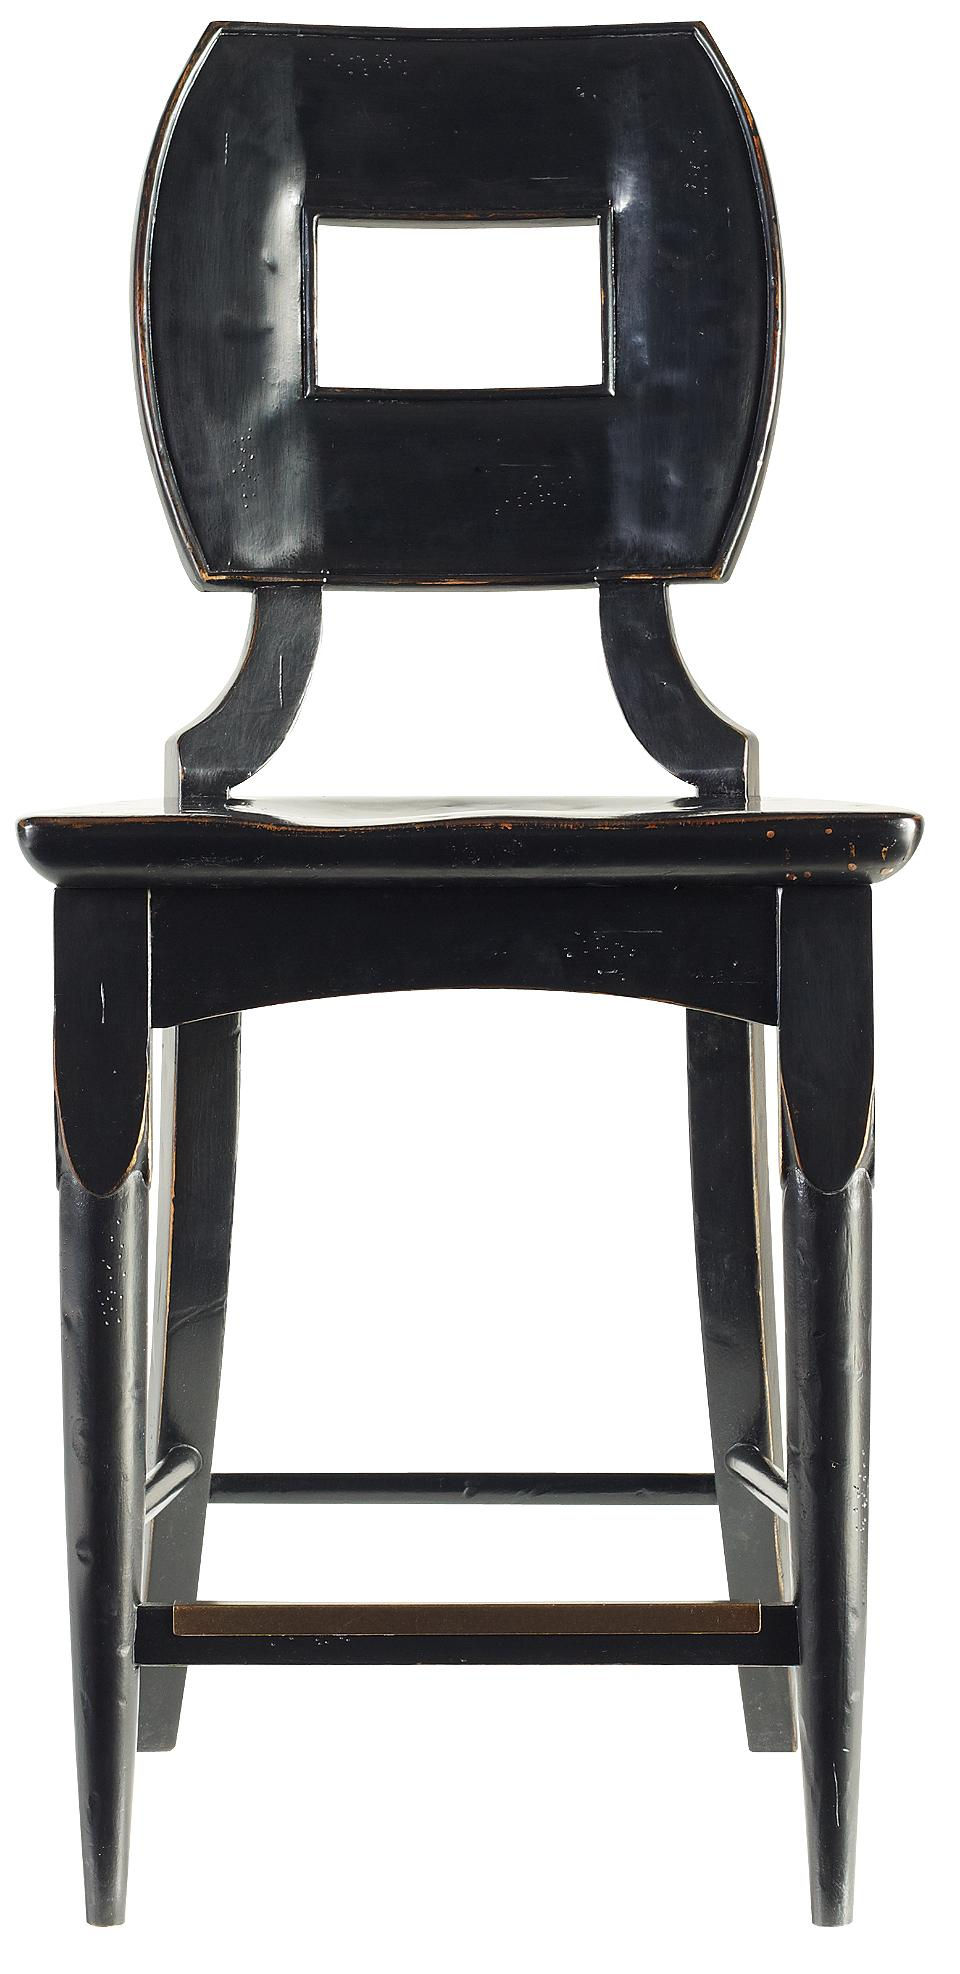 Stanley Furniture The Classic Portfolio Artisan Counter Stool - Item Number: 135-81-72